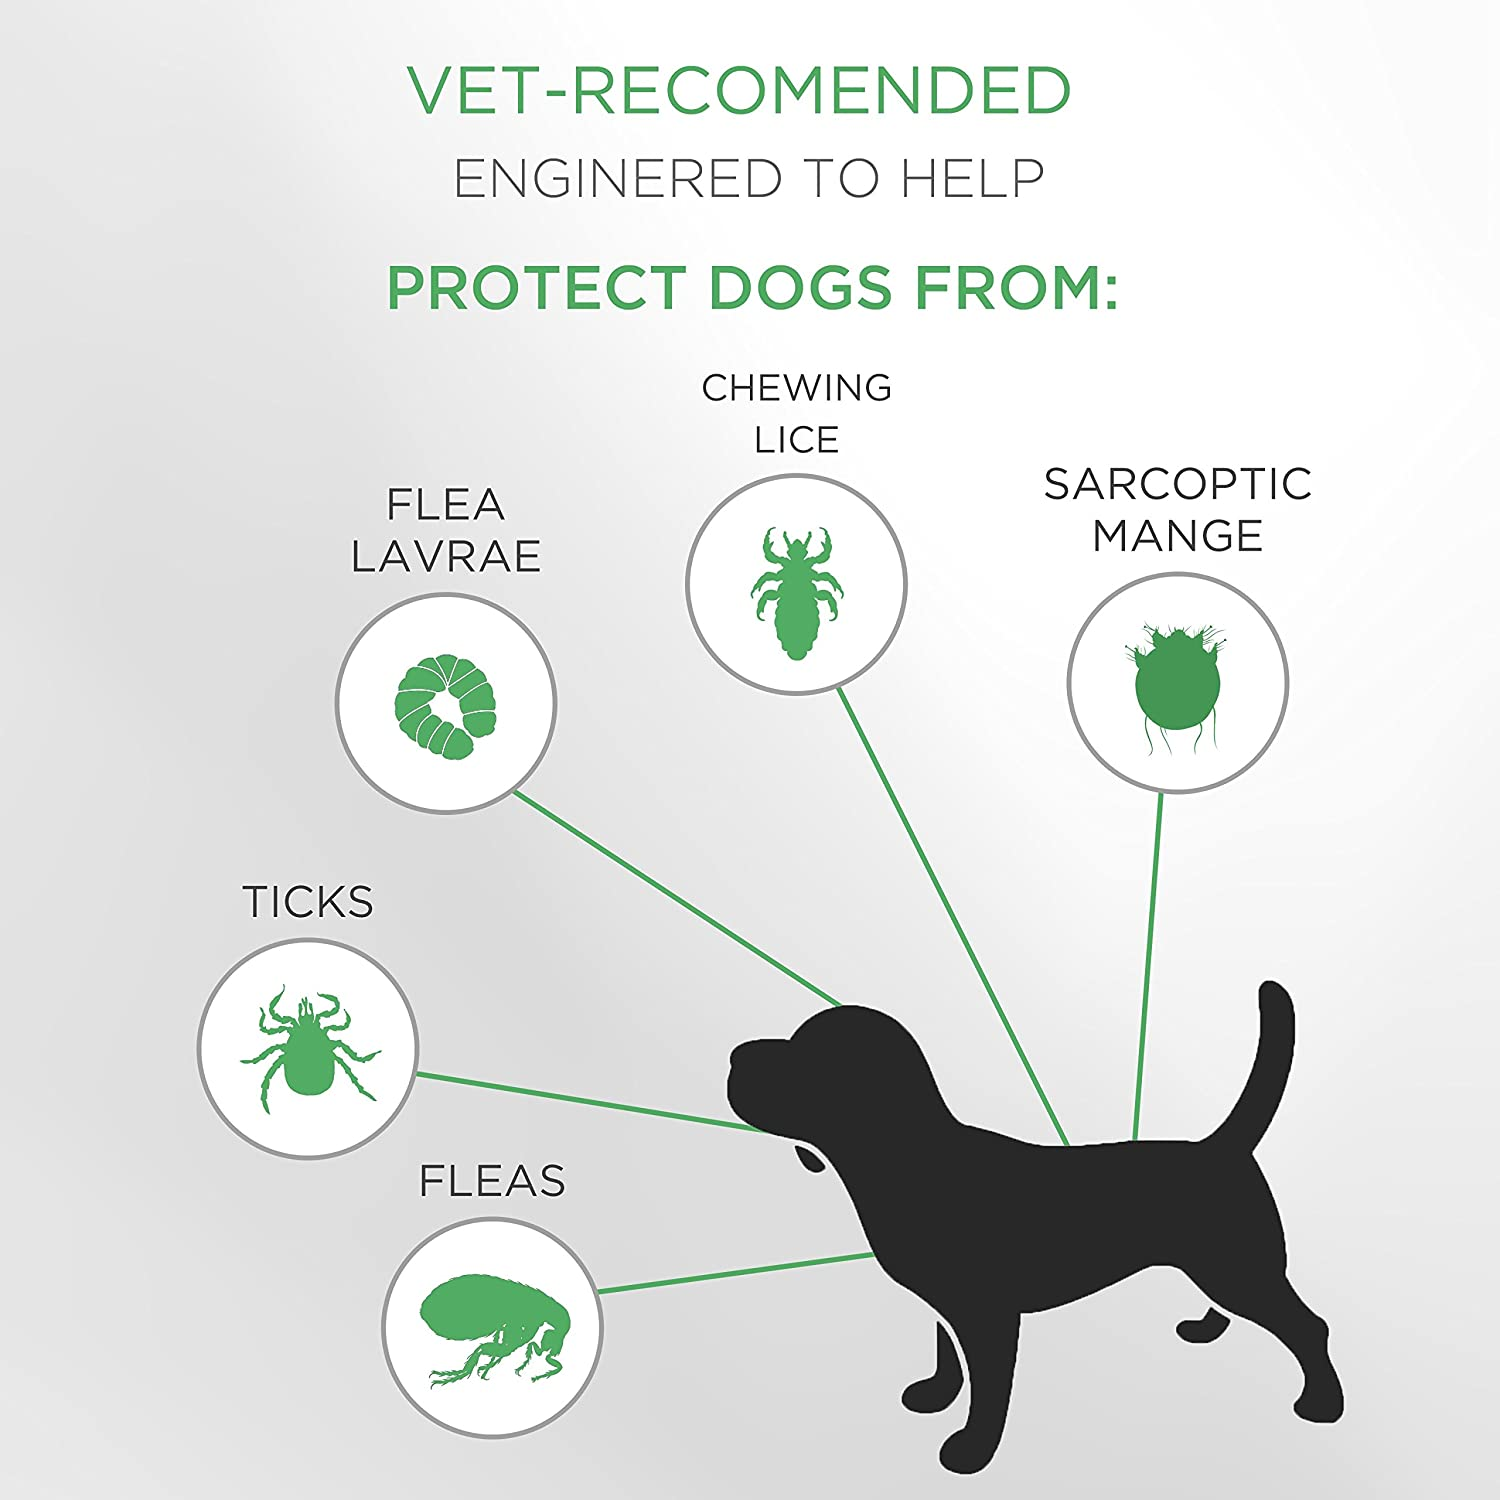 SOBAKEN Flea and Tick Prevention for Dogs, Natural and Hypoallergenic Flea and Tick Collar for Dogs, One Size Fits All, 25 inch, 8 Month Protection, Charity : Pet Supplies